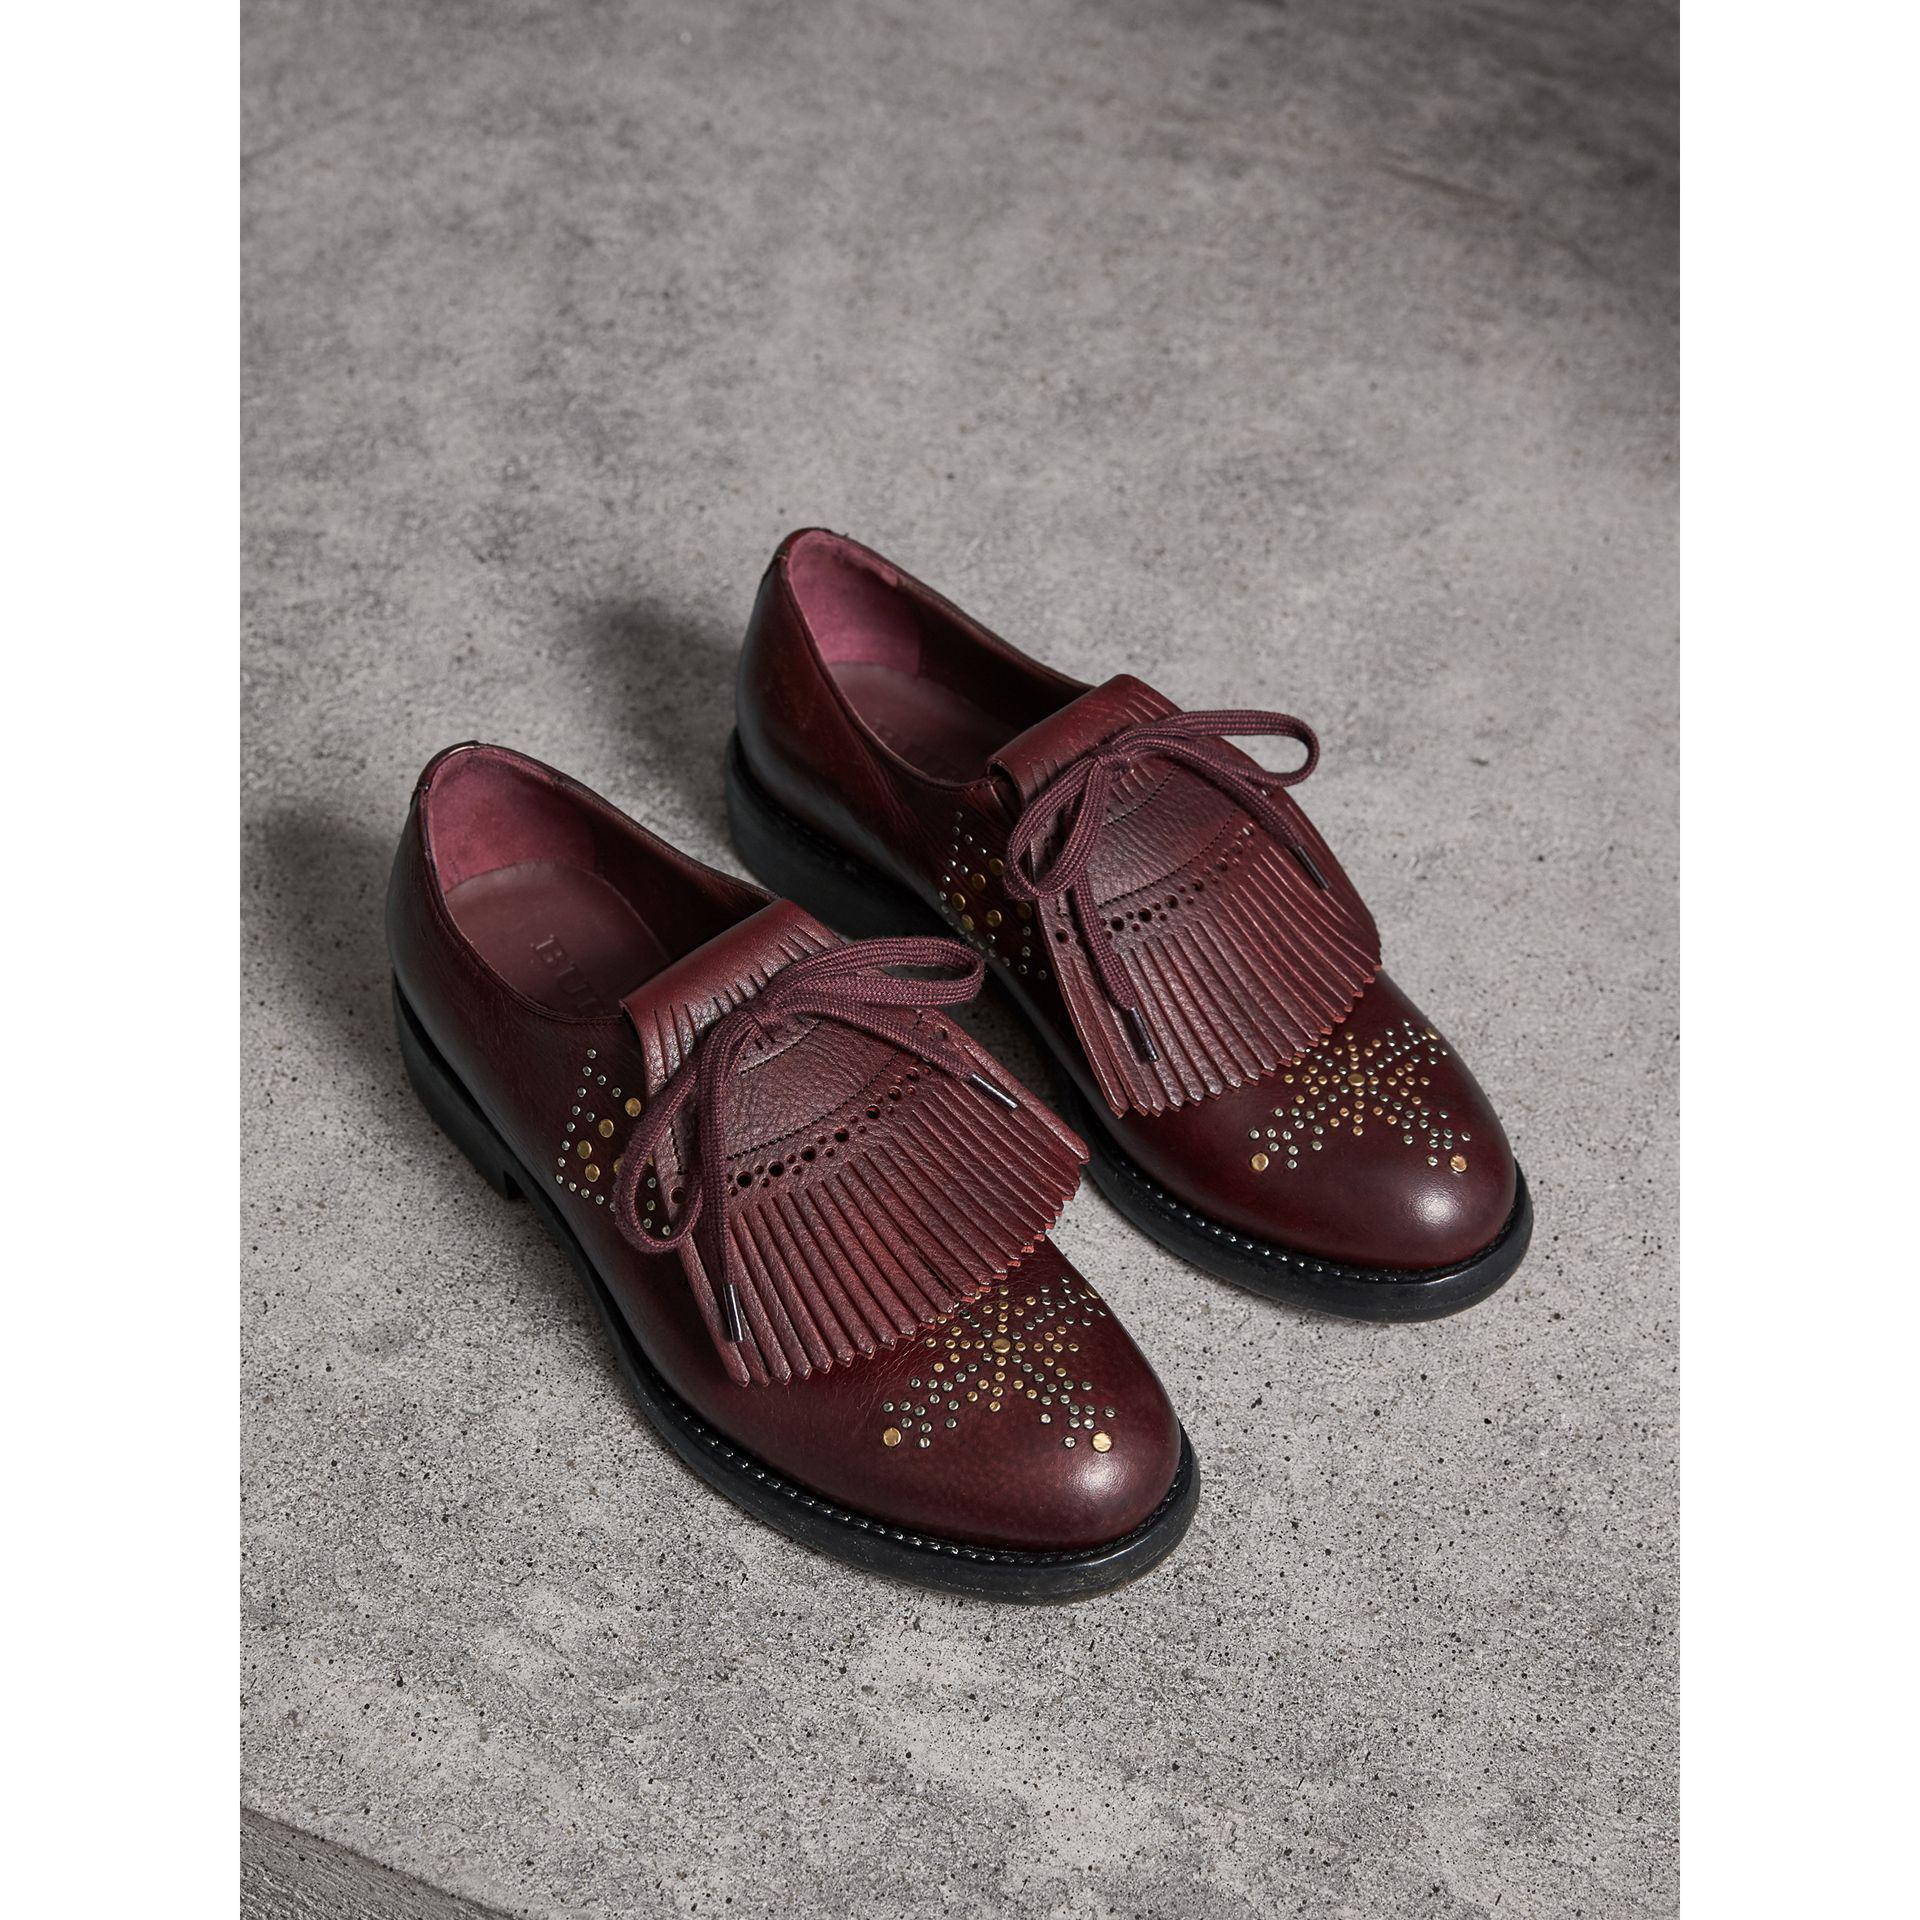 b3fcb5f65f03 Lyst - Burberry Lace-up Kiltie Fringe Riveted Leather Loafers